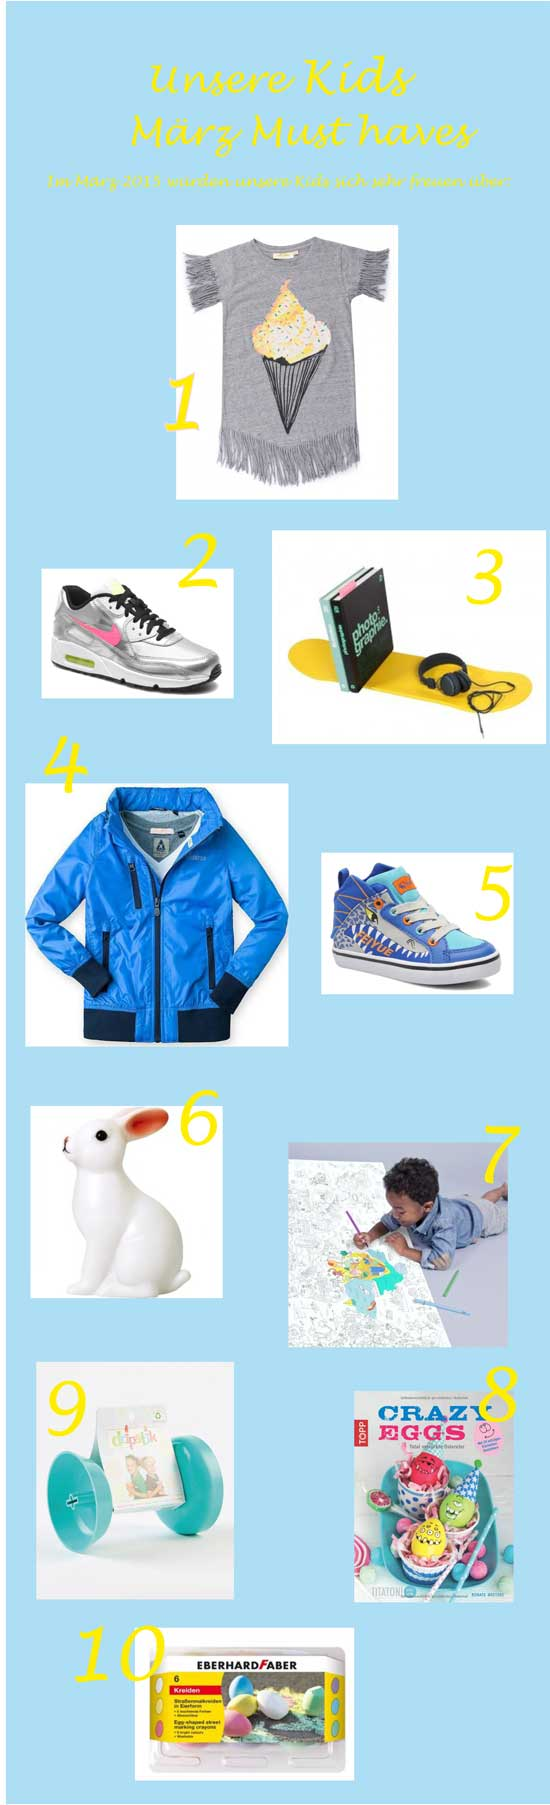 Maerz-Must-haves-2015-Kids